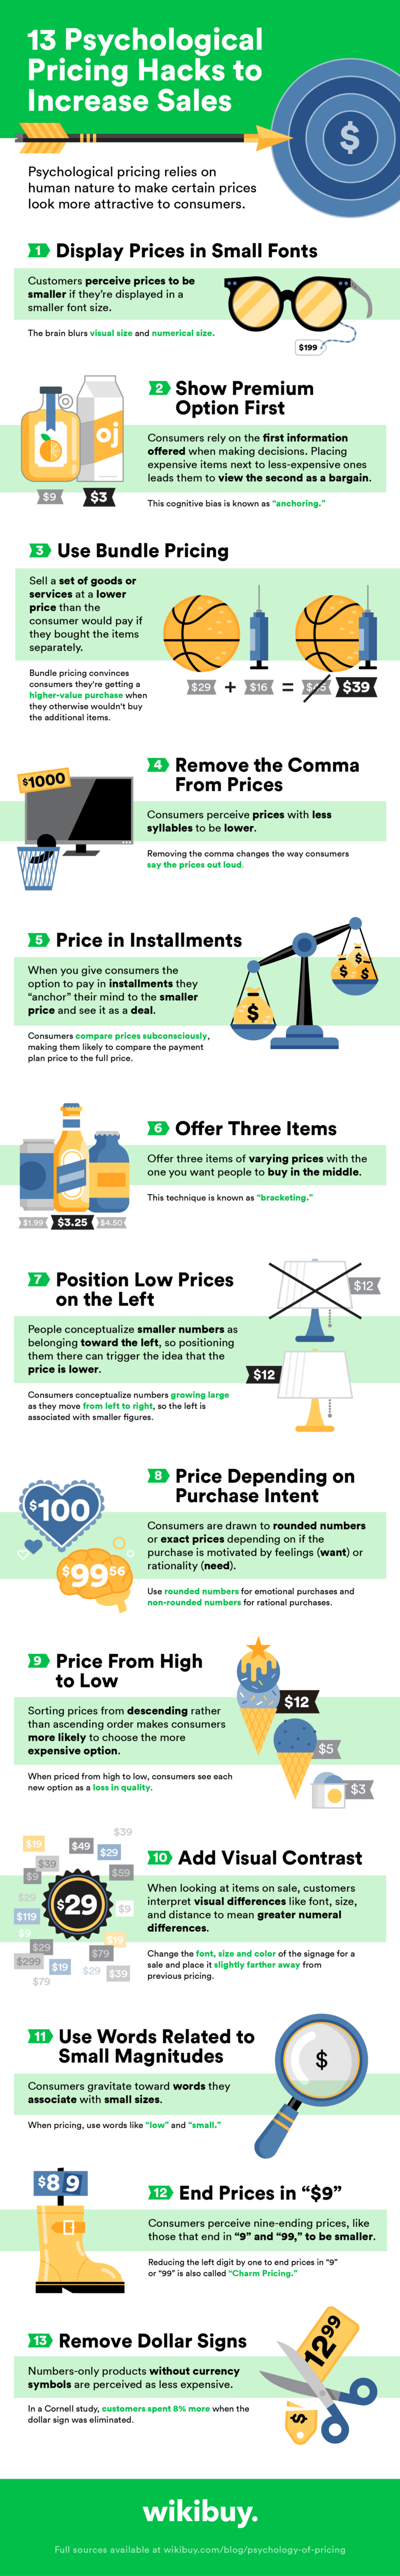 Psychology and Pricing